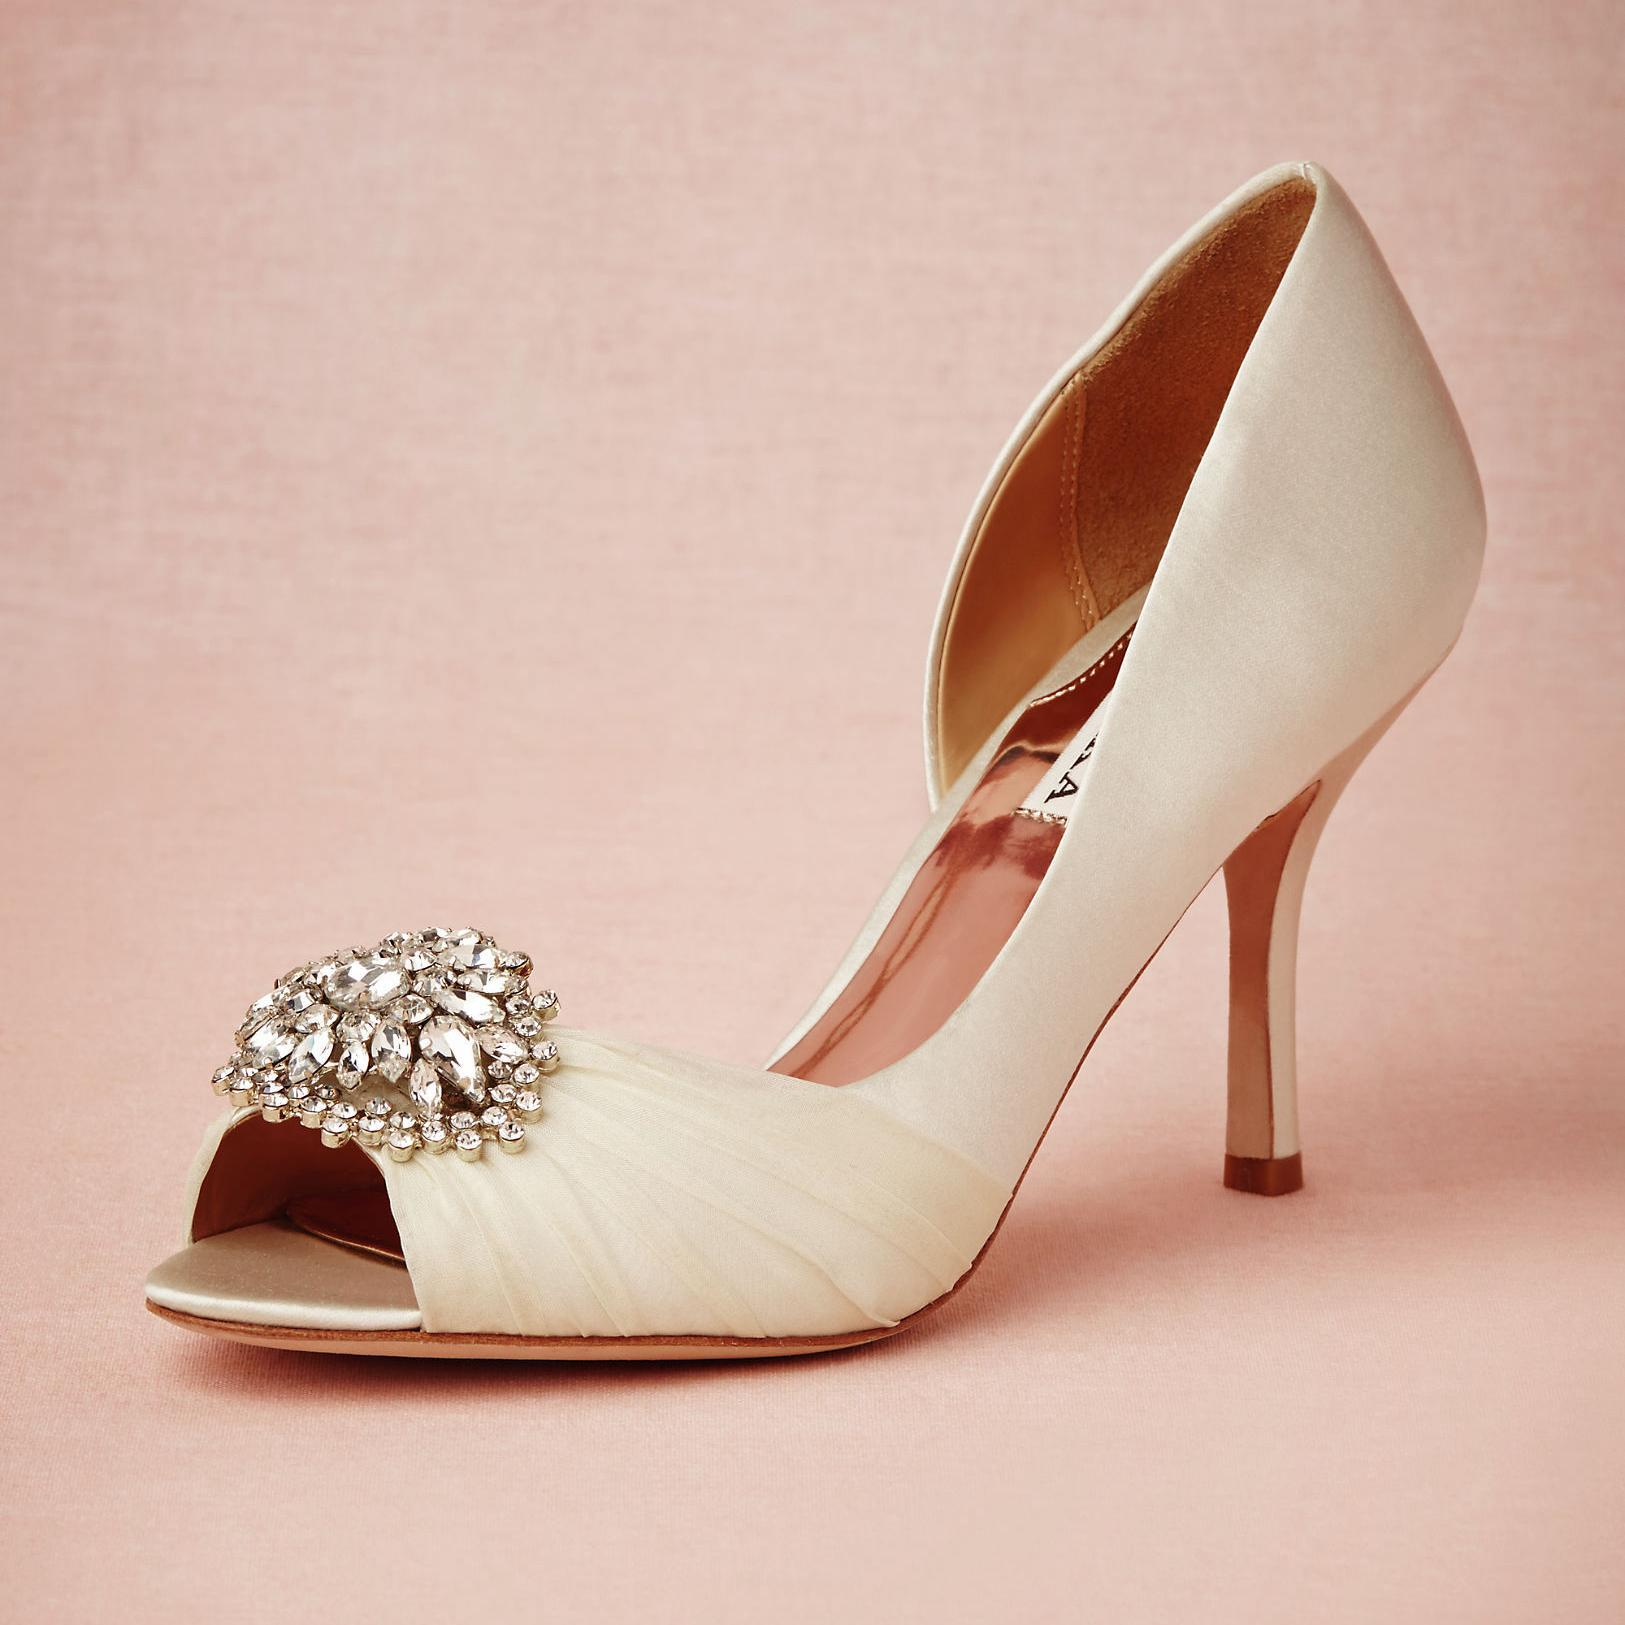 Glamorous Mid Heel Wedding Shoes Heels Custom Pumps Peep Toe ...